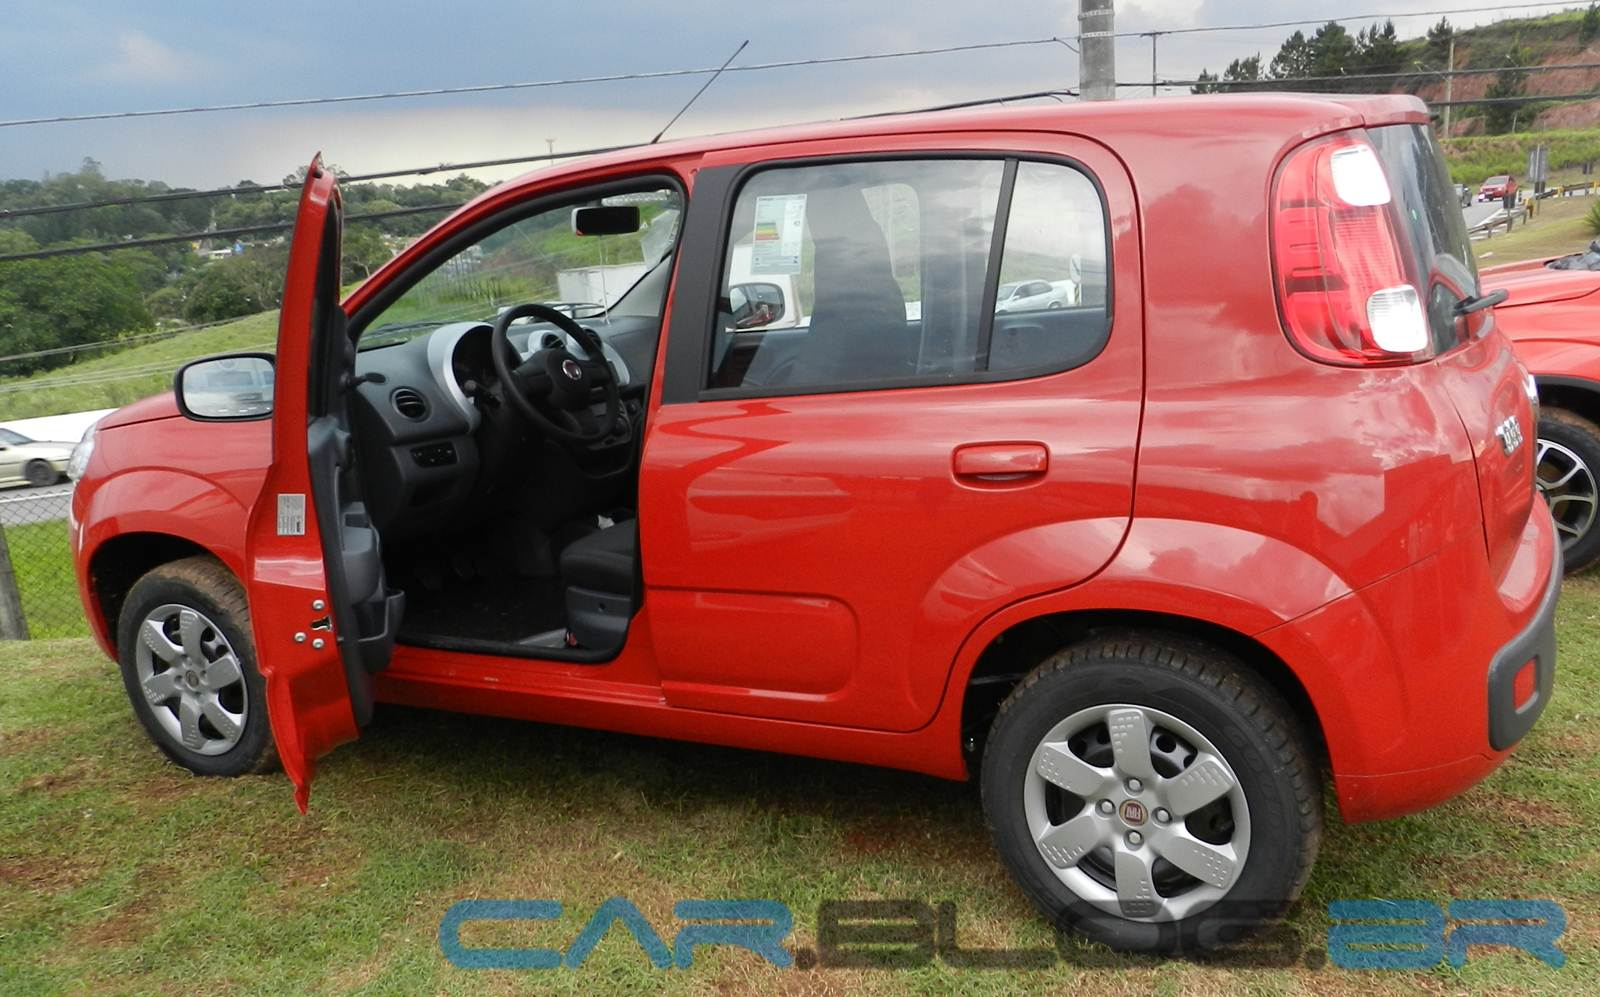 fiat uno consumo with Uno Economy 14 Evo Flex Consumo Preco on Fiat panda 12 easy besides Nova Fiat Doblo 2018 moreover Fiat Uno Mille Way 2013 Fotos Preco together with Fichadetalhe additionally Showthread.